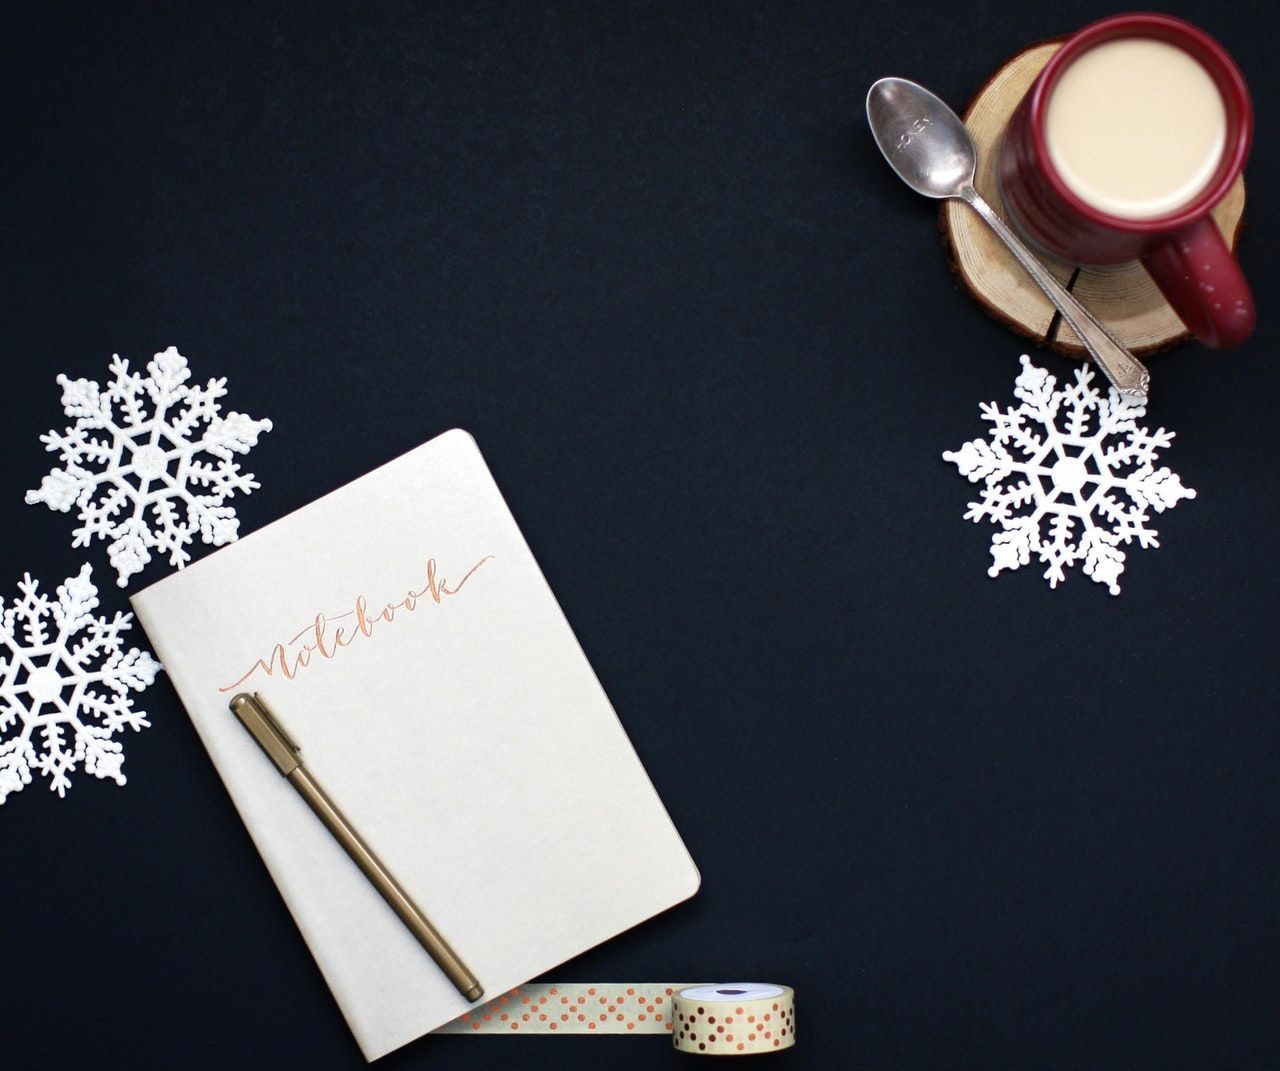 3 Facebook Marketing Tips For The Holidays